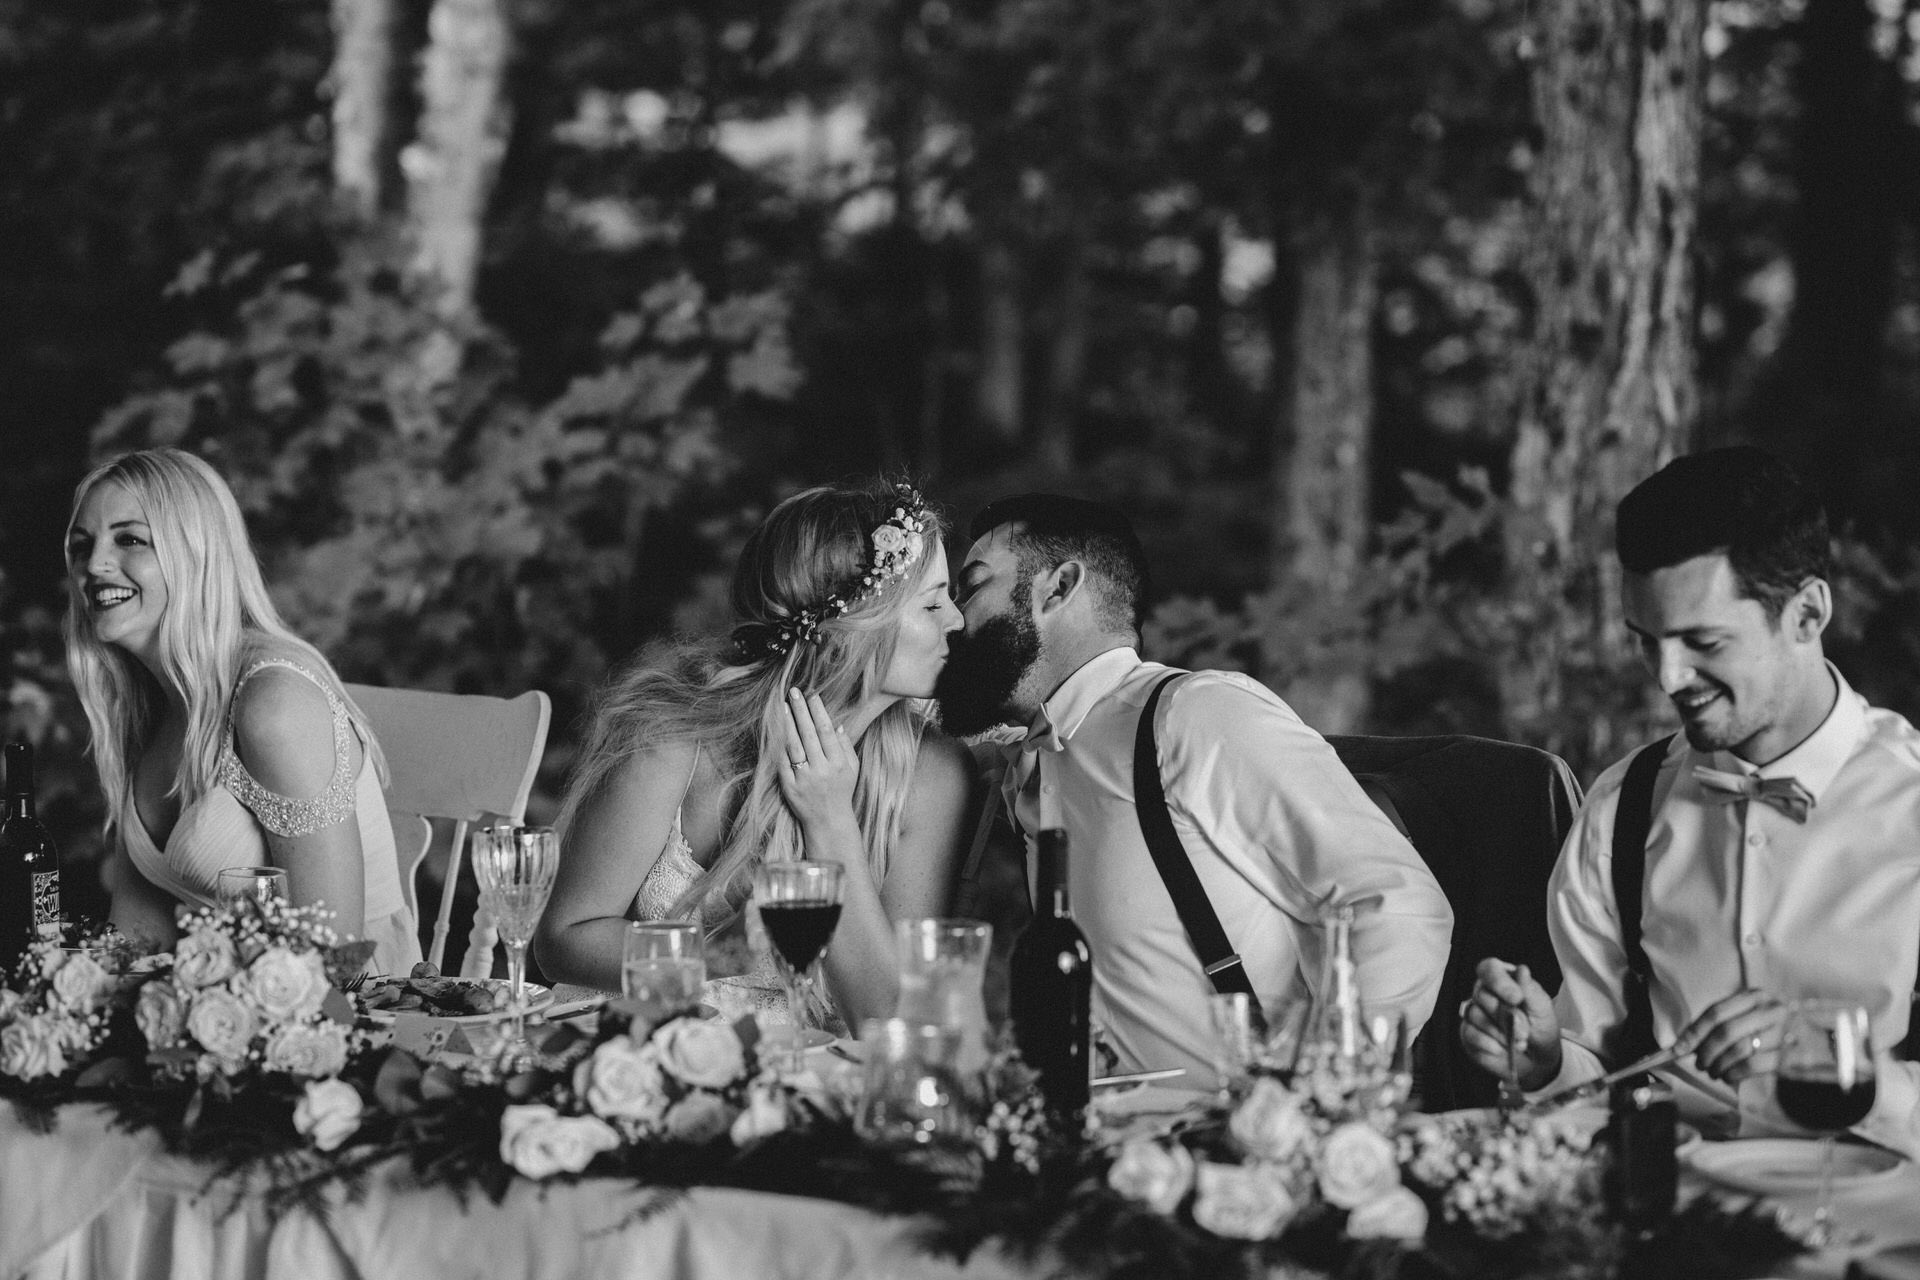 Muskoka Wedding - kissing at the table